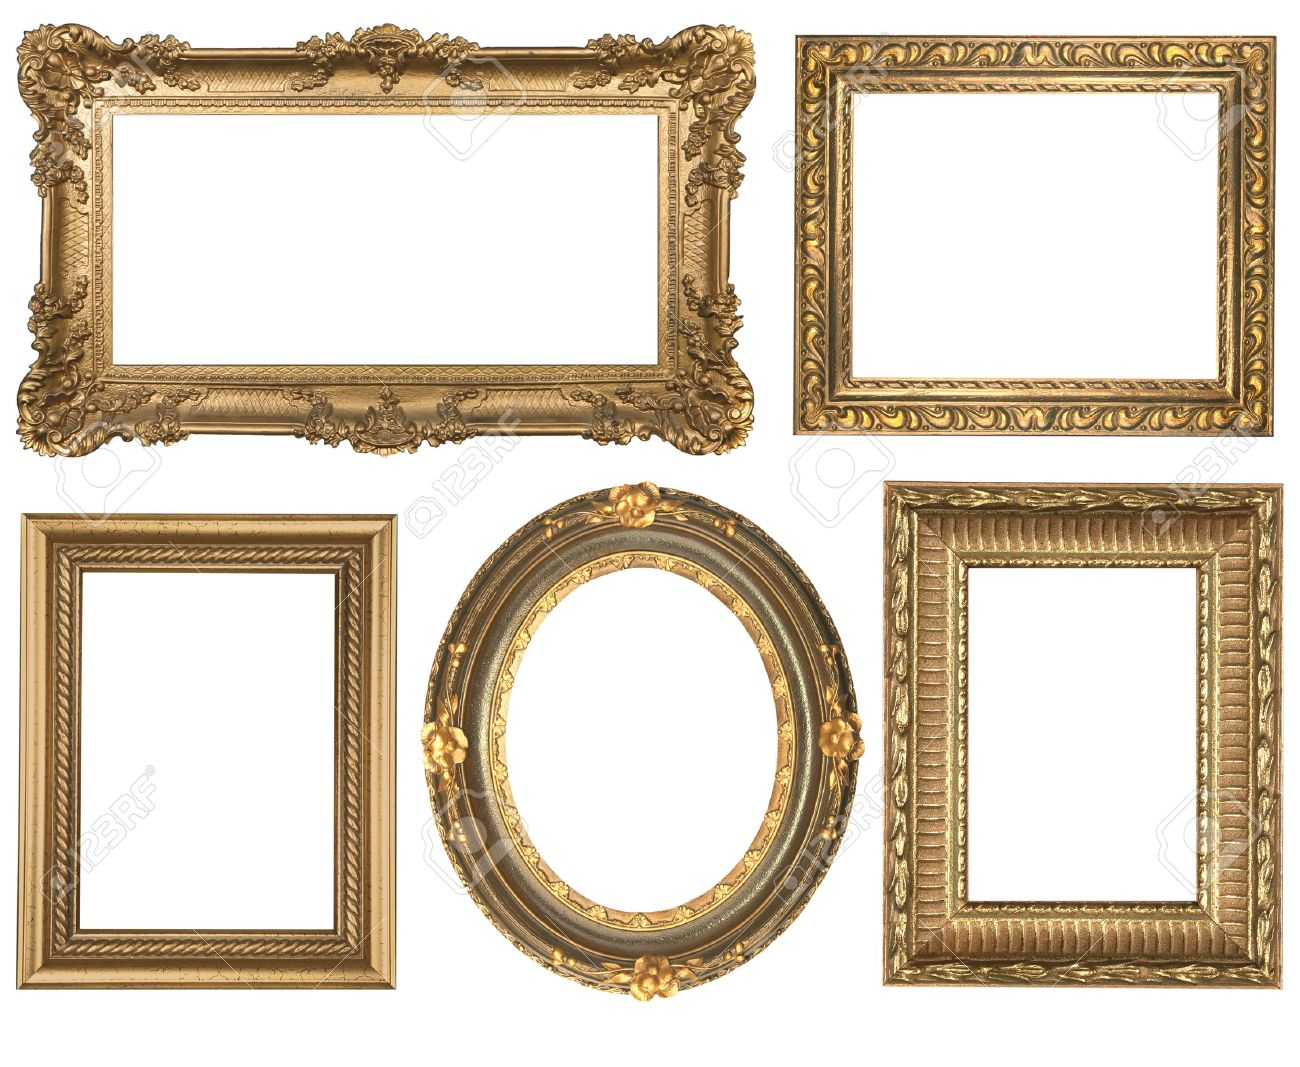 Decorative Gold Empty Oval and Square Wall Picture Frames Insert Your Own  Design Stock Photo -